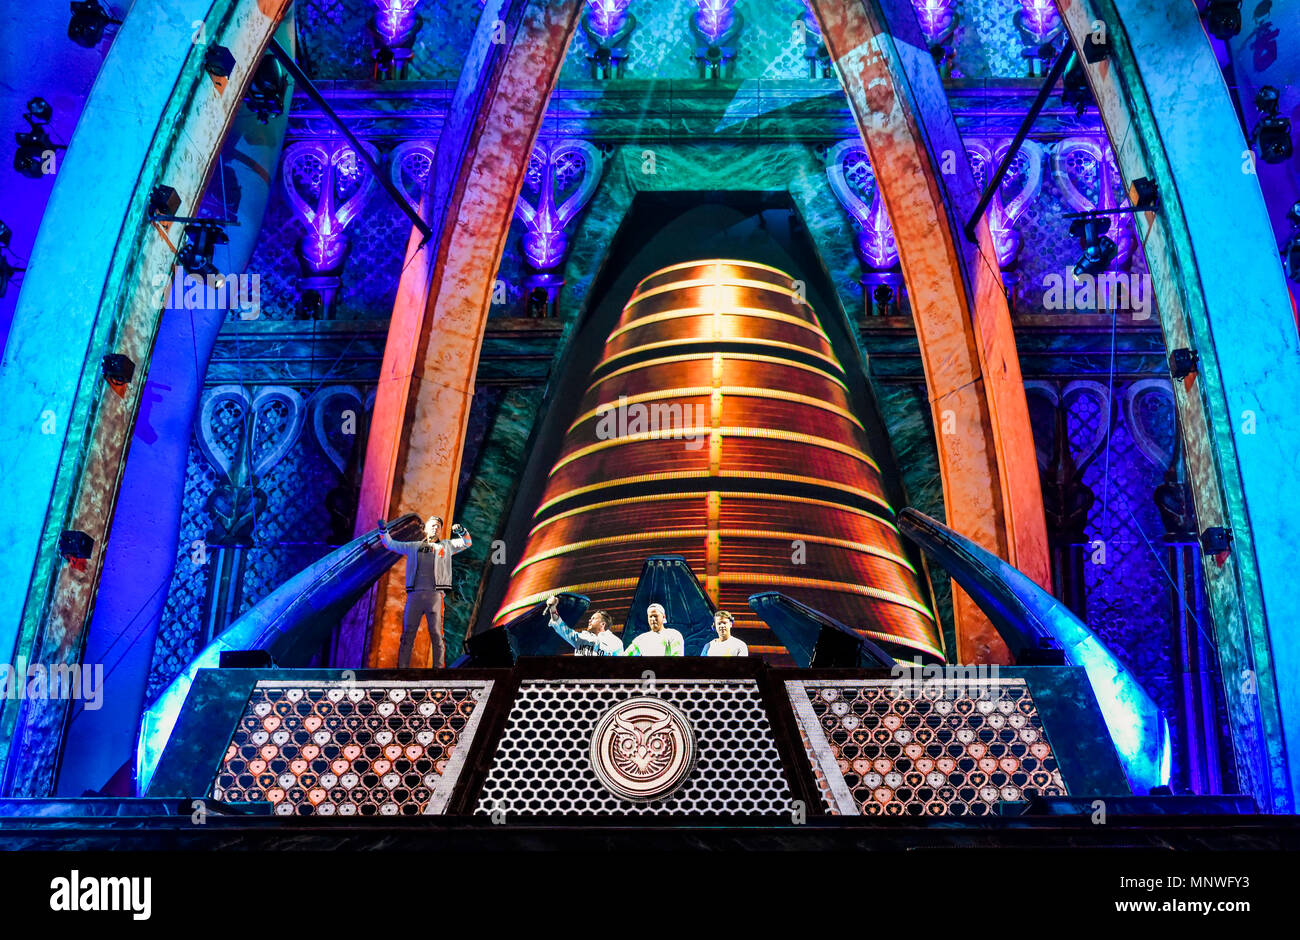 Las Vegas, Nevada, May 18, 2018, Firebeatz vs Dubvision on the Kinetic Field Stage at Electric Daisy Carnival, edc festival, Day 1, Credit: Ken Howard Images/Alamy Live News - Stock Image